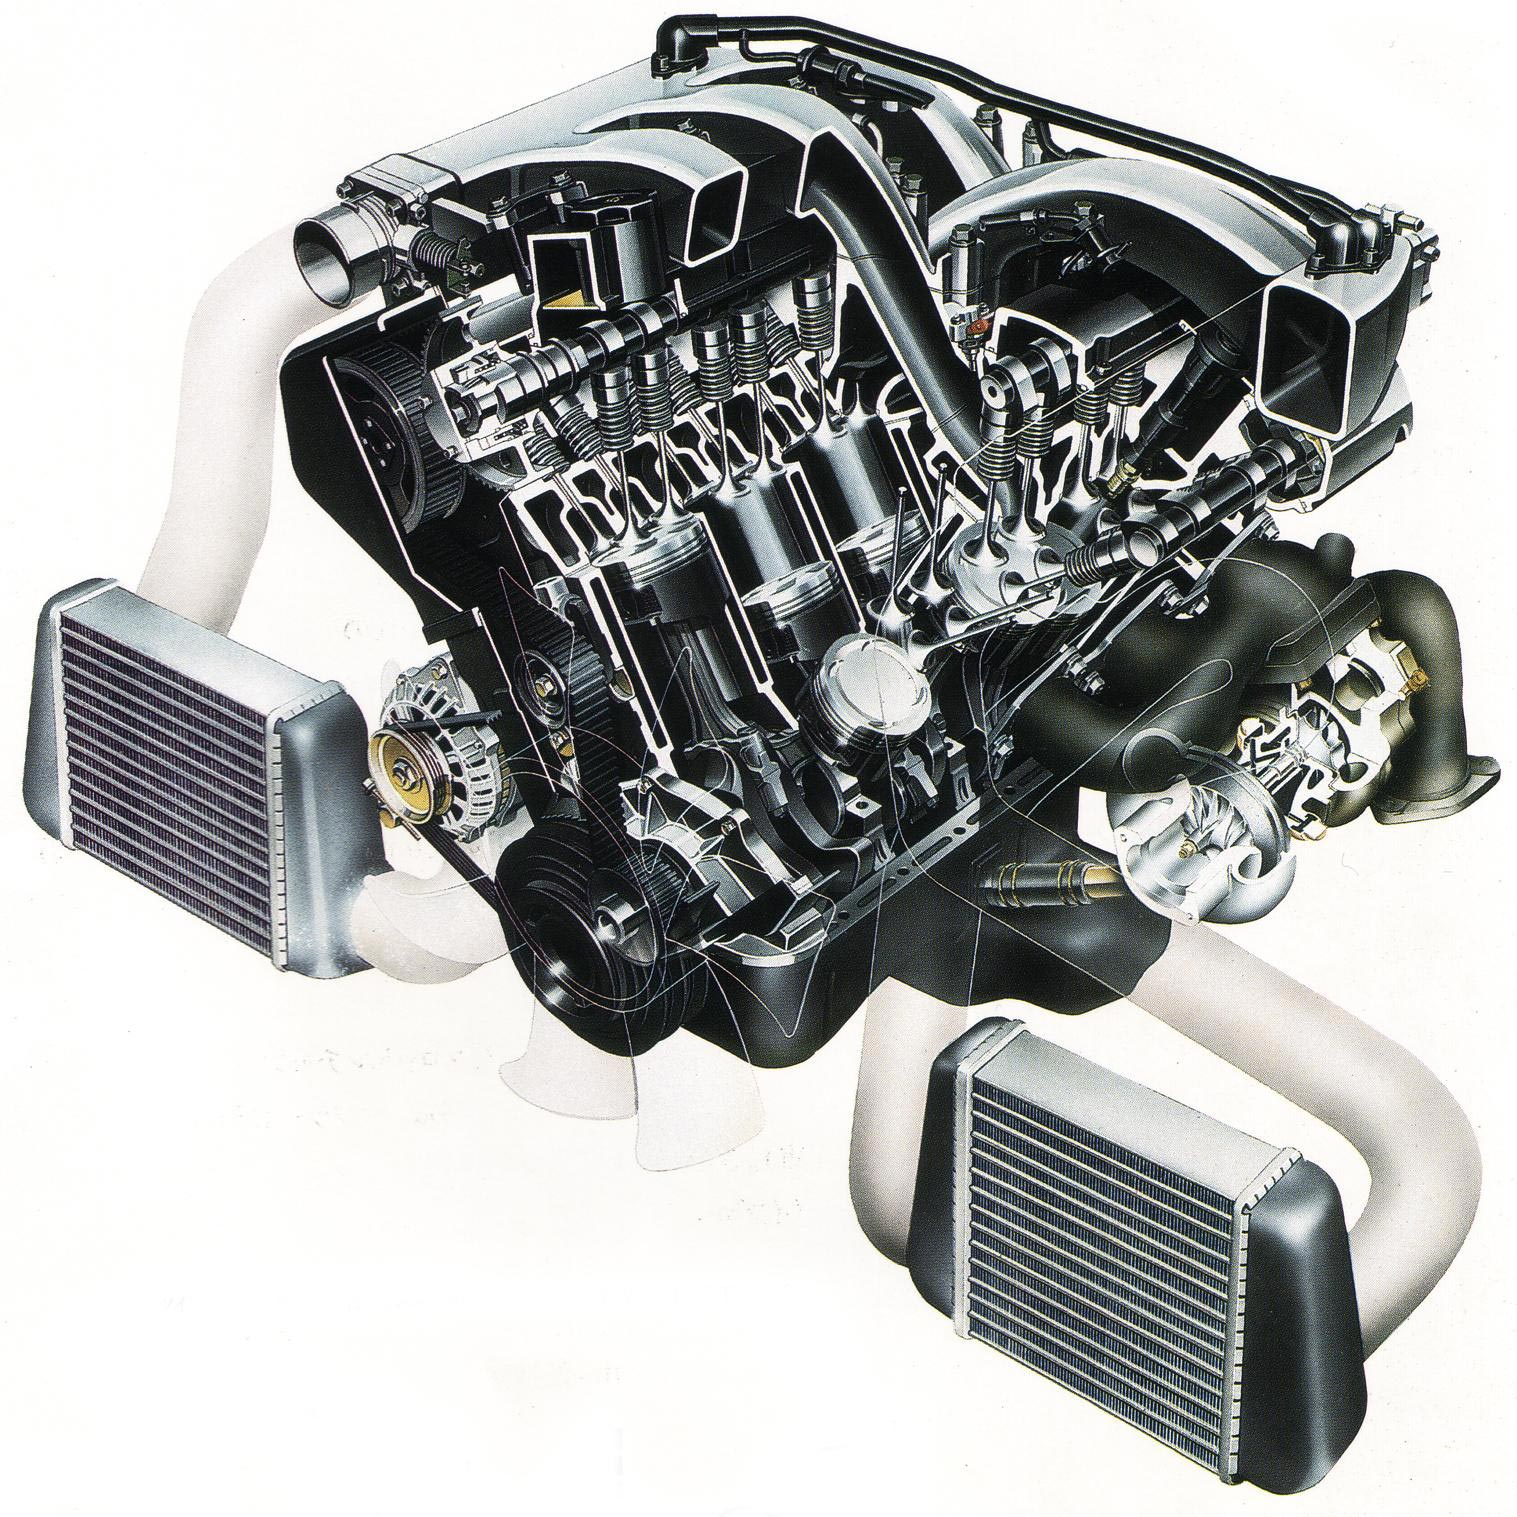 Twin Turbo Engine cutaway